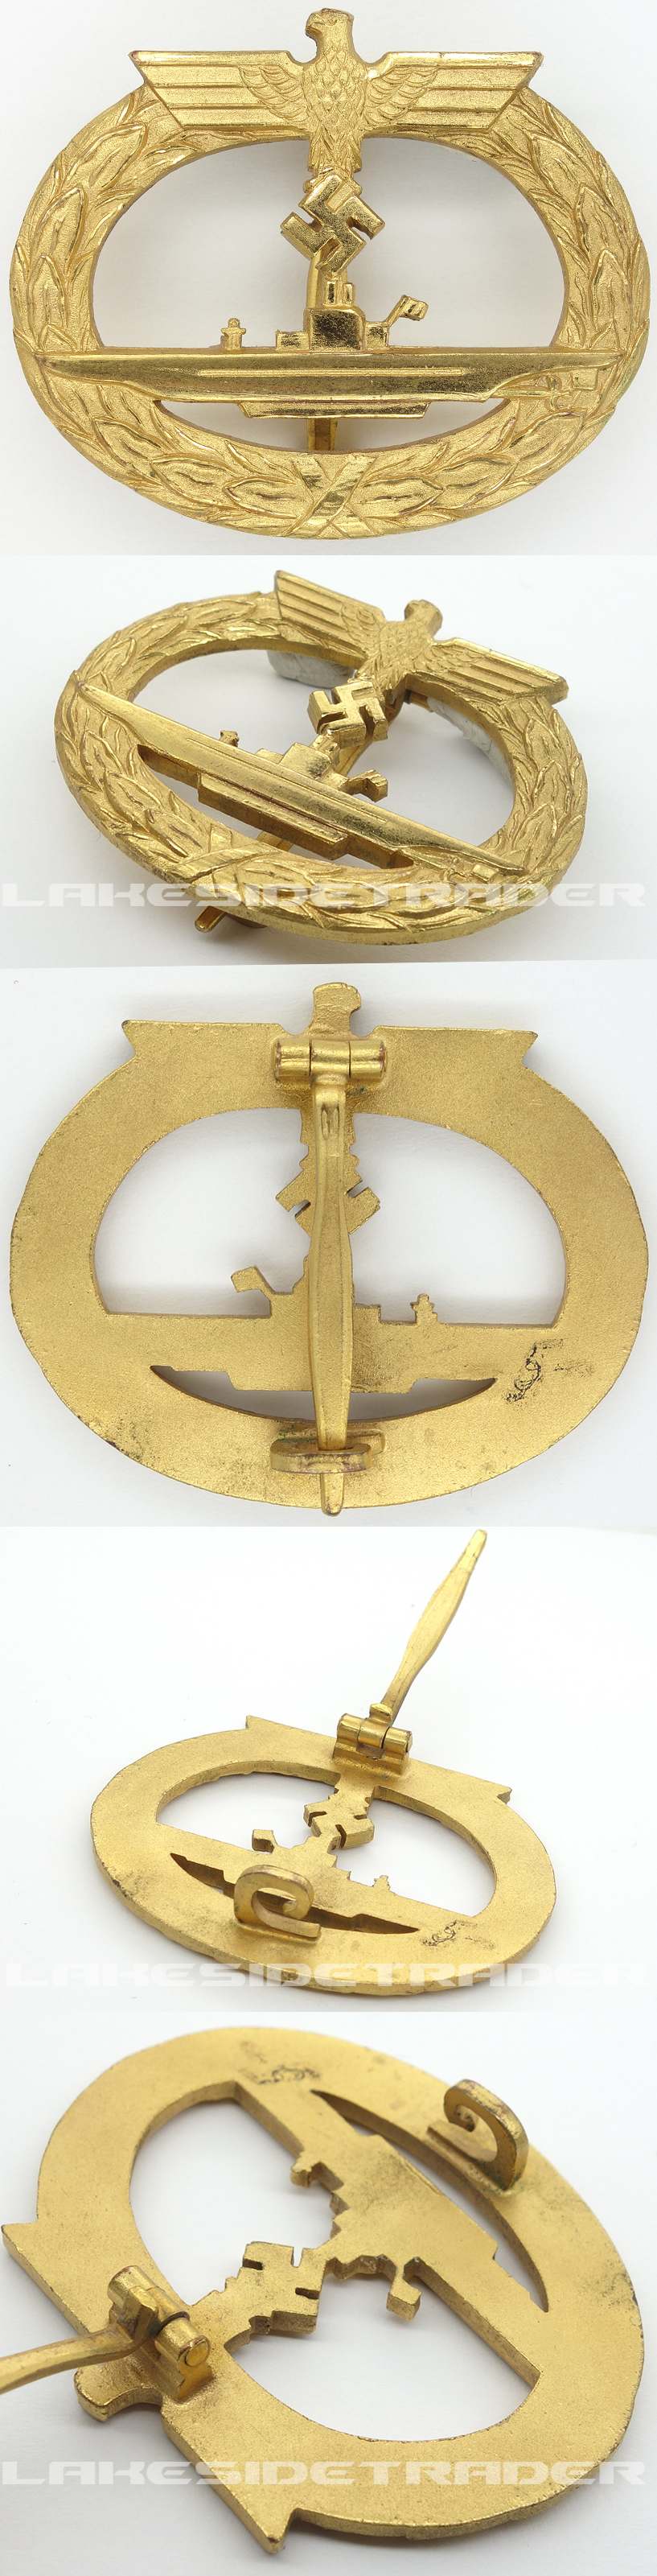 Navy U-Boat Badge by B.H. Mayer